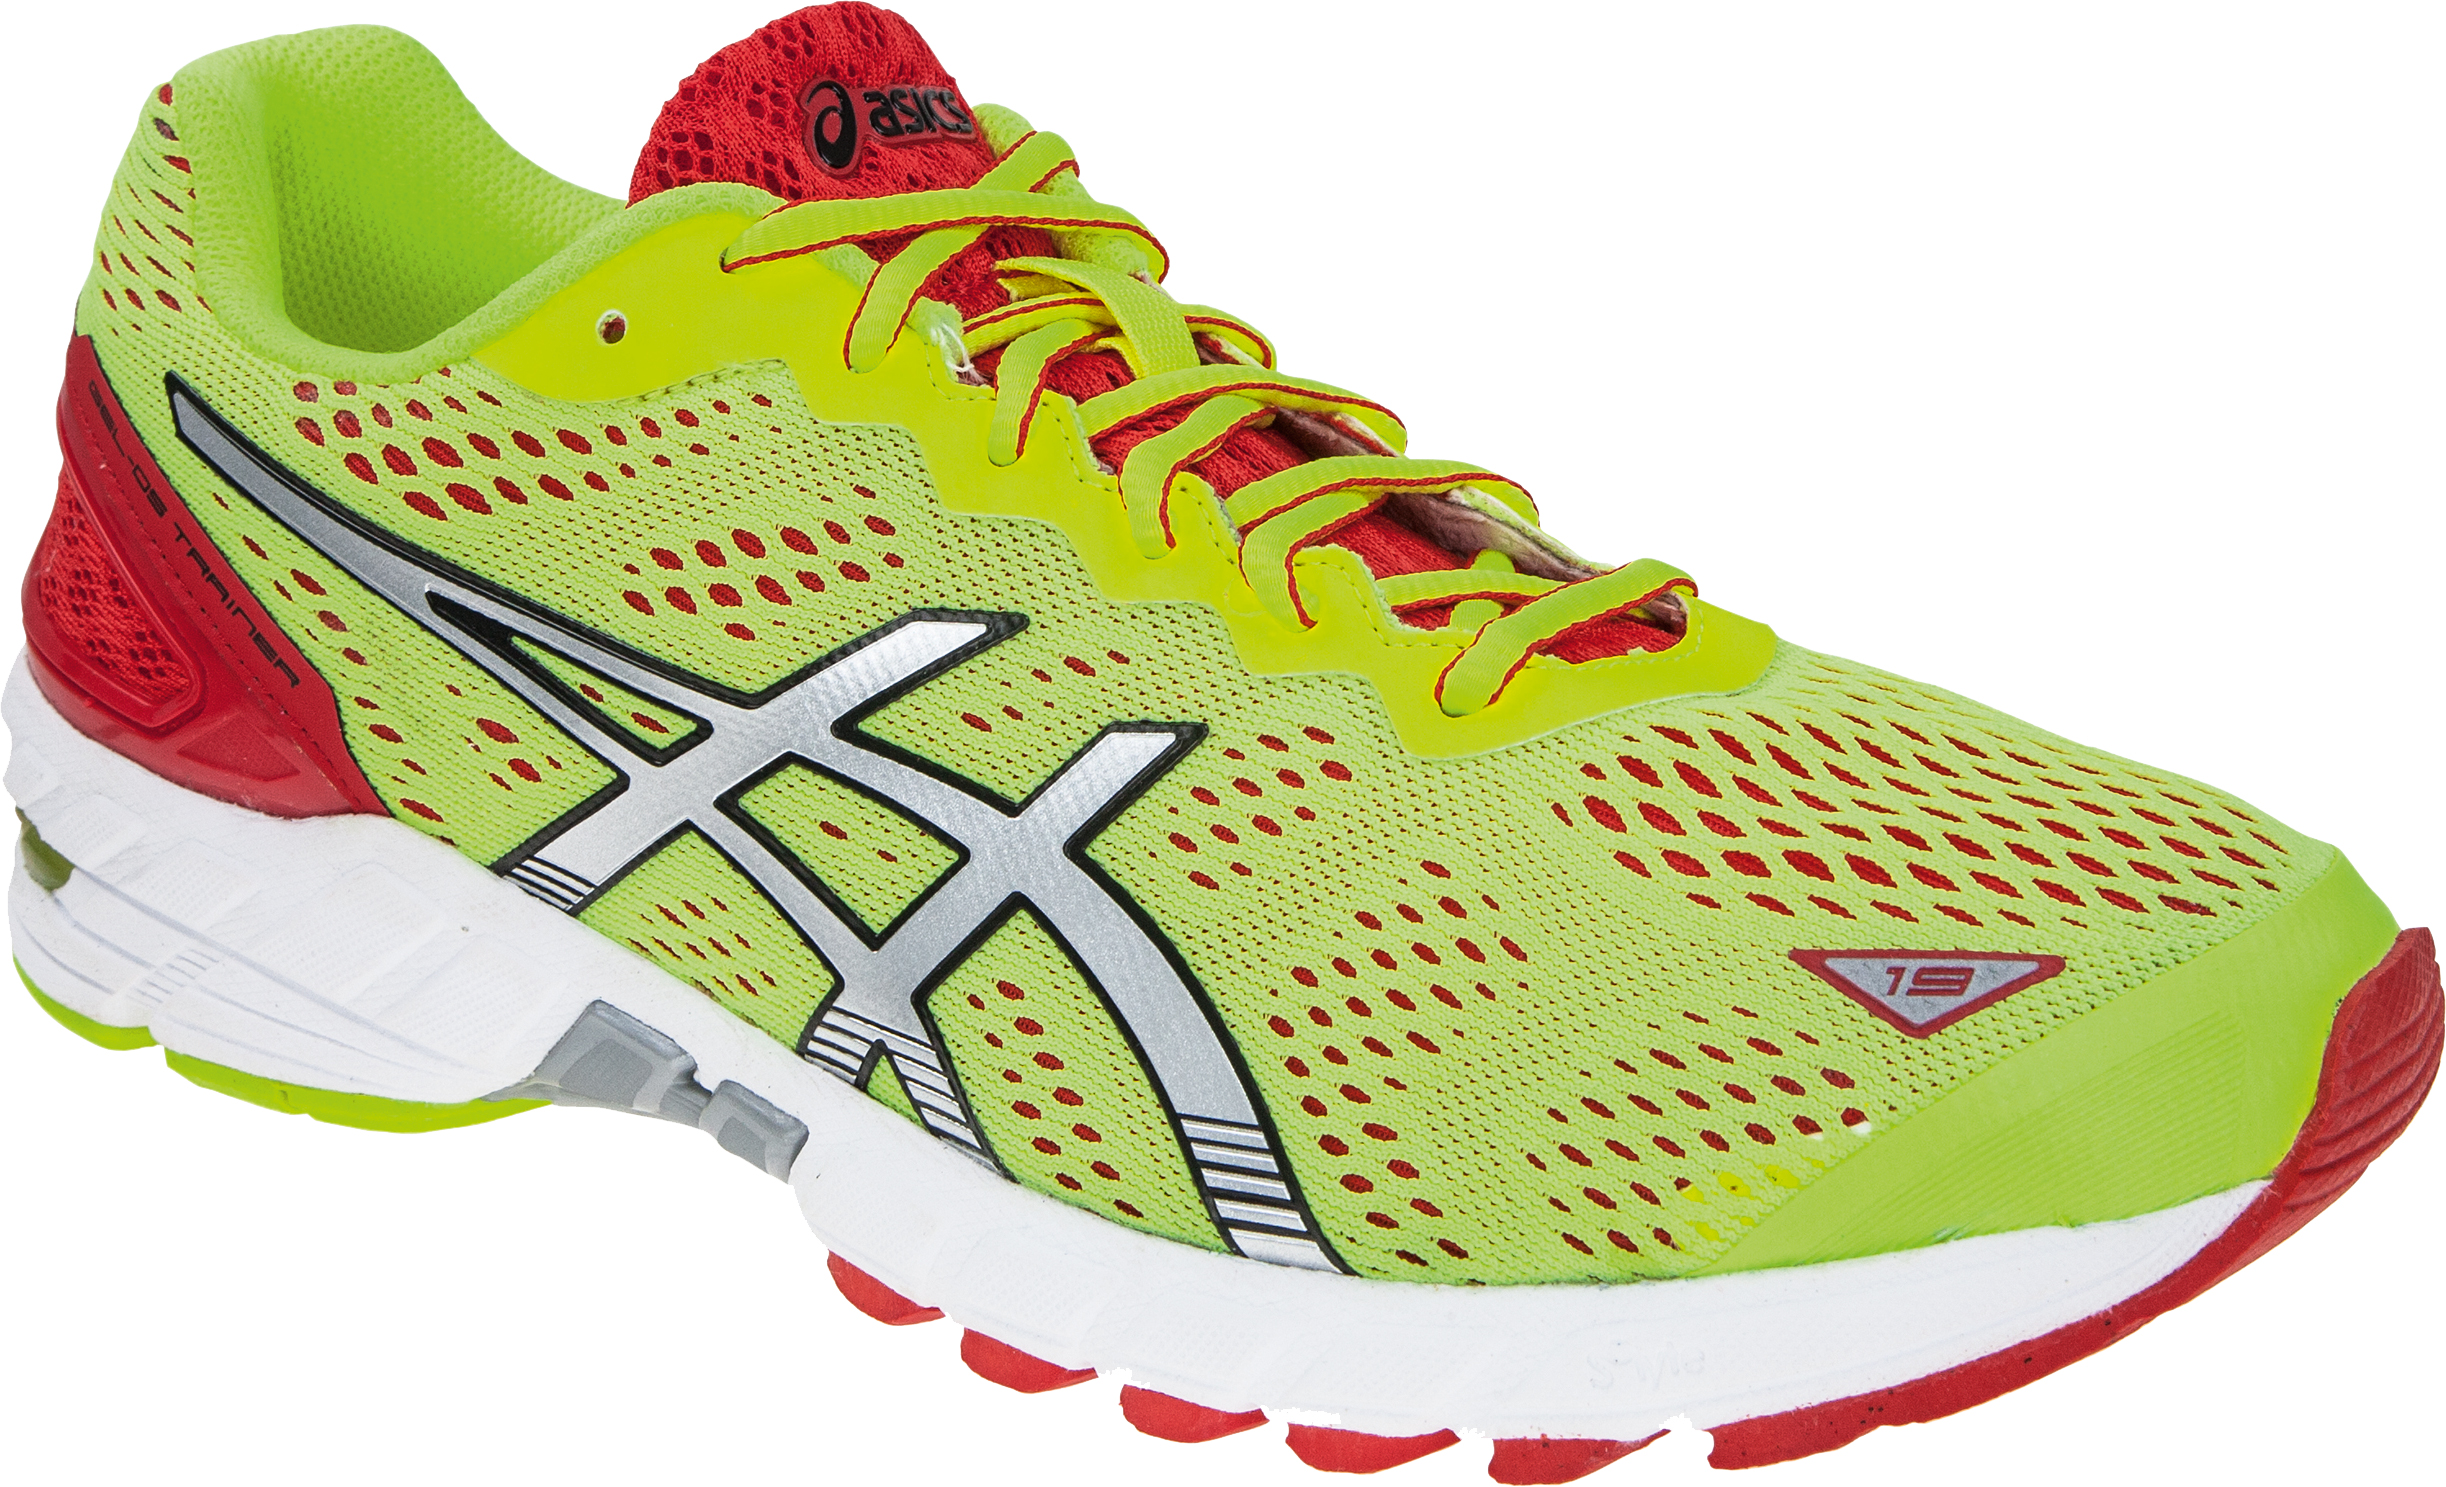 Asics Gel Trainer 19 Spain